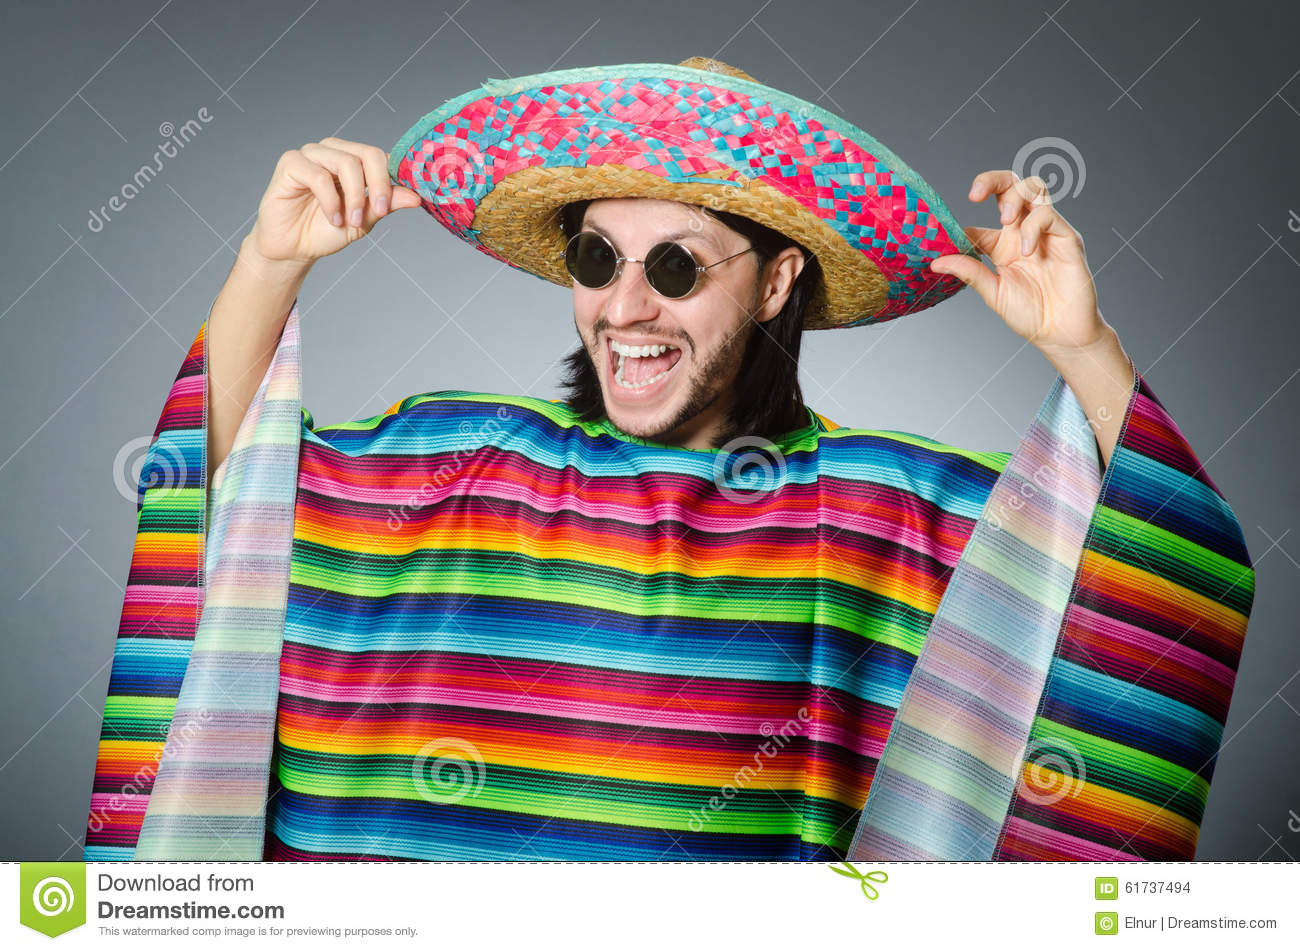 dc253220bd6 The Funny Mexican Wearing Sombrero Hat Stock Photo - Image of happy ...